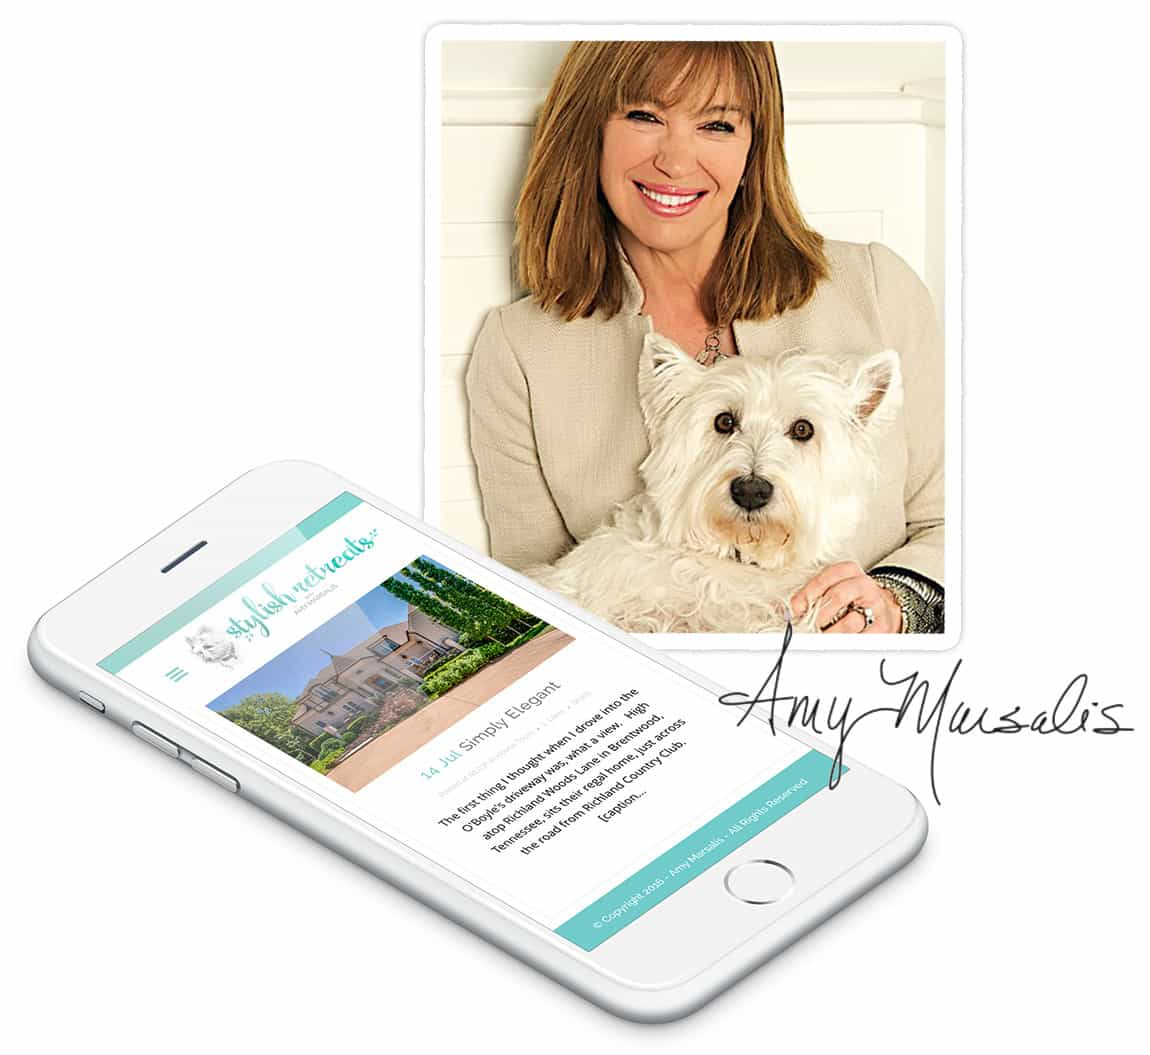 Stylish Retreats by Amy Marsalis - Nashville Web Design